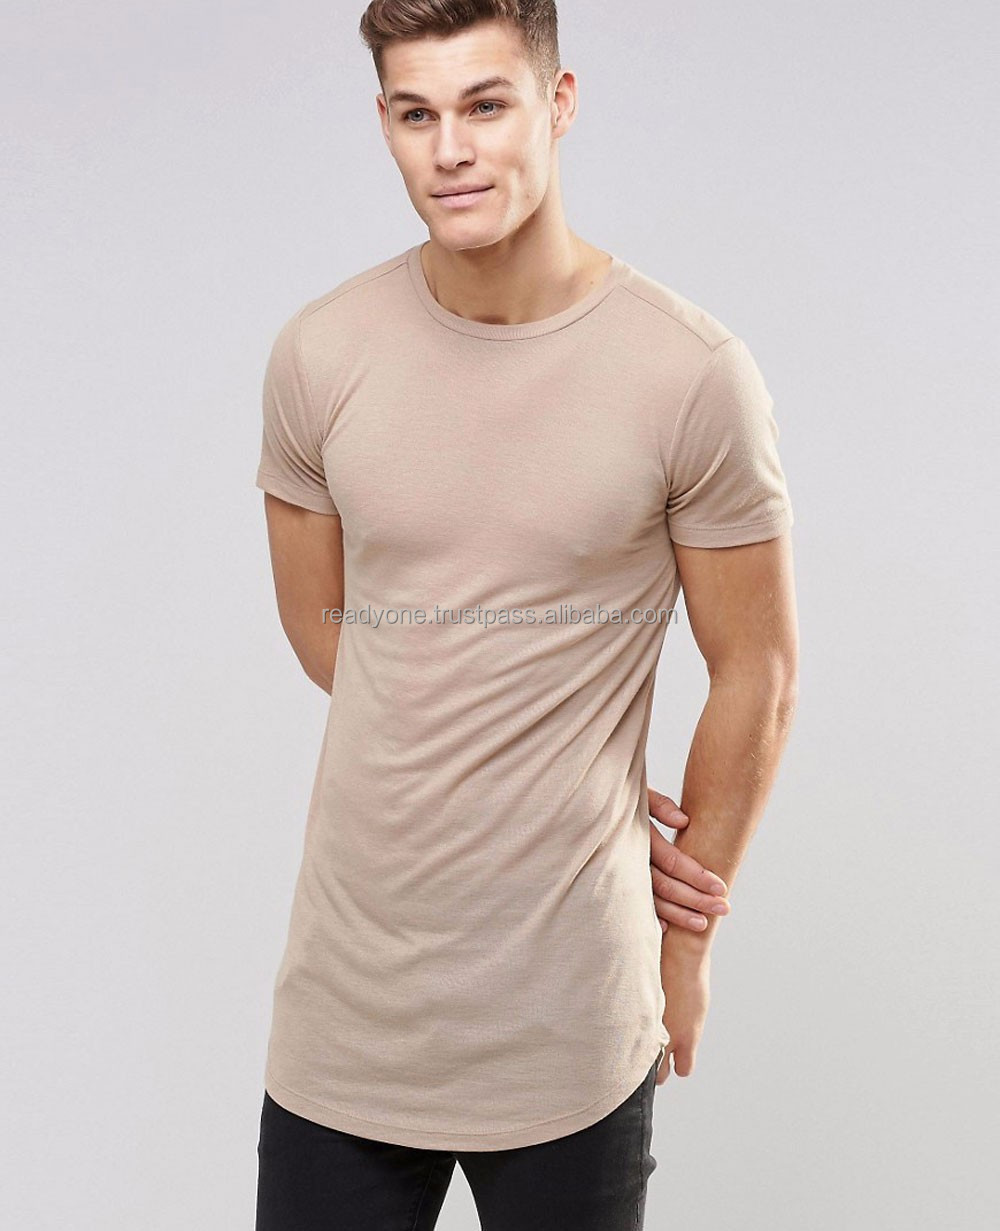 Plain cotton round neck mens 70% polyester 30% cotton t-shirts with contrast pocket online shopping